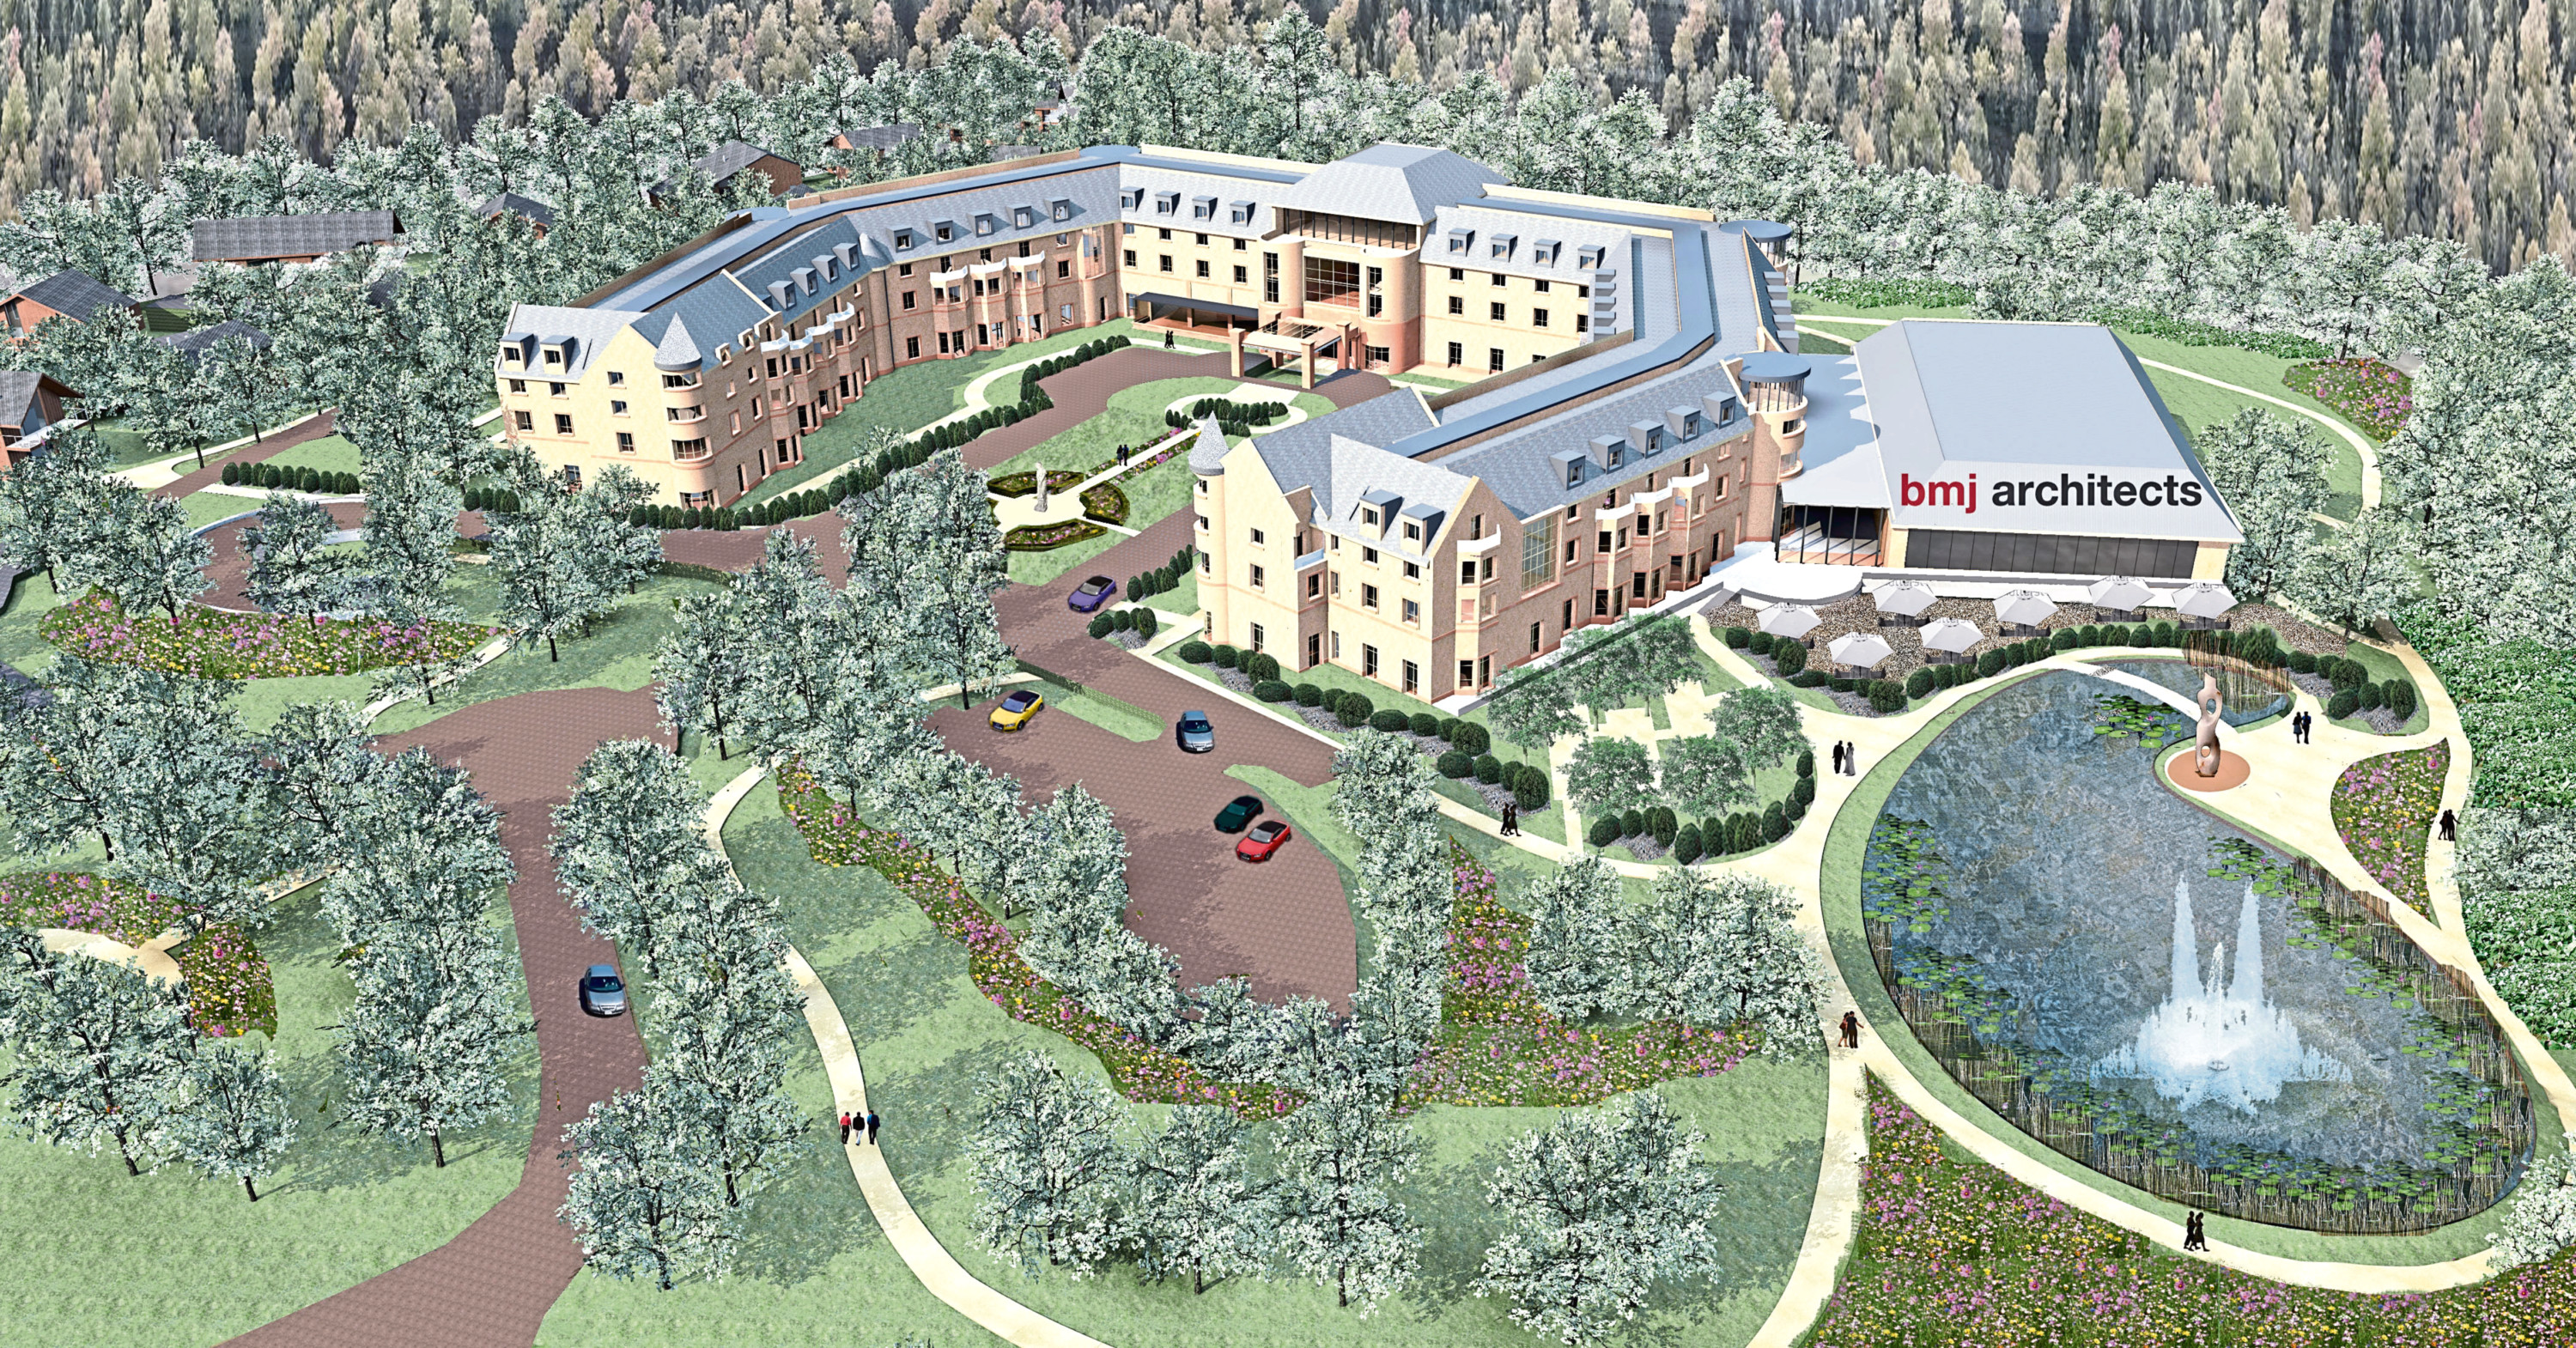 An artist's impression of the proposed luxury hotel development